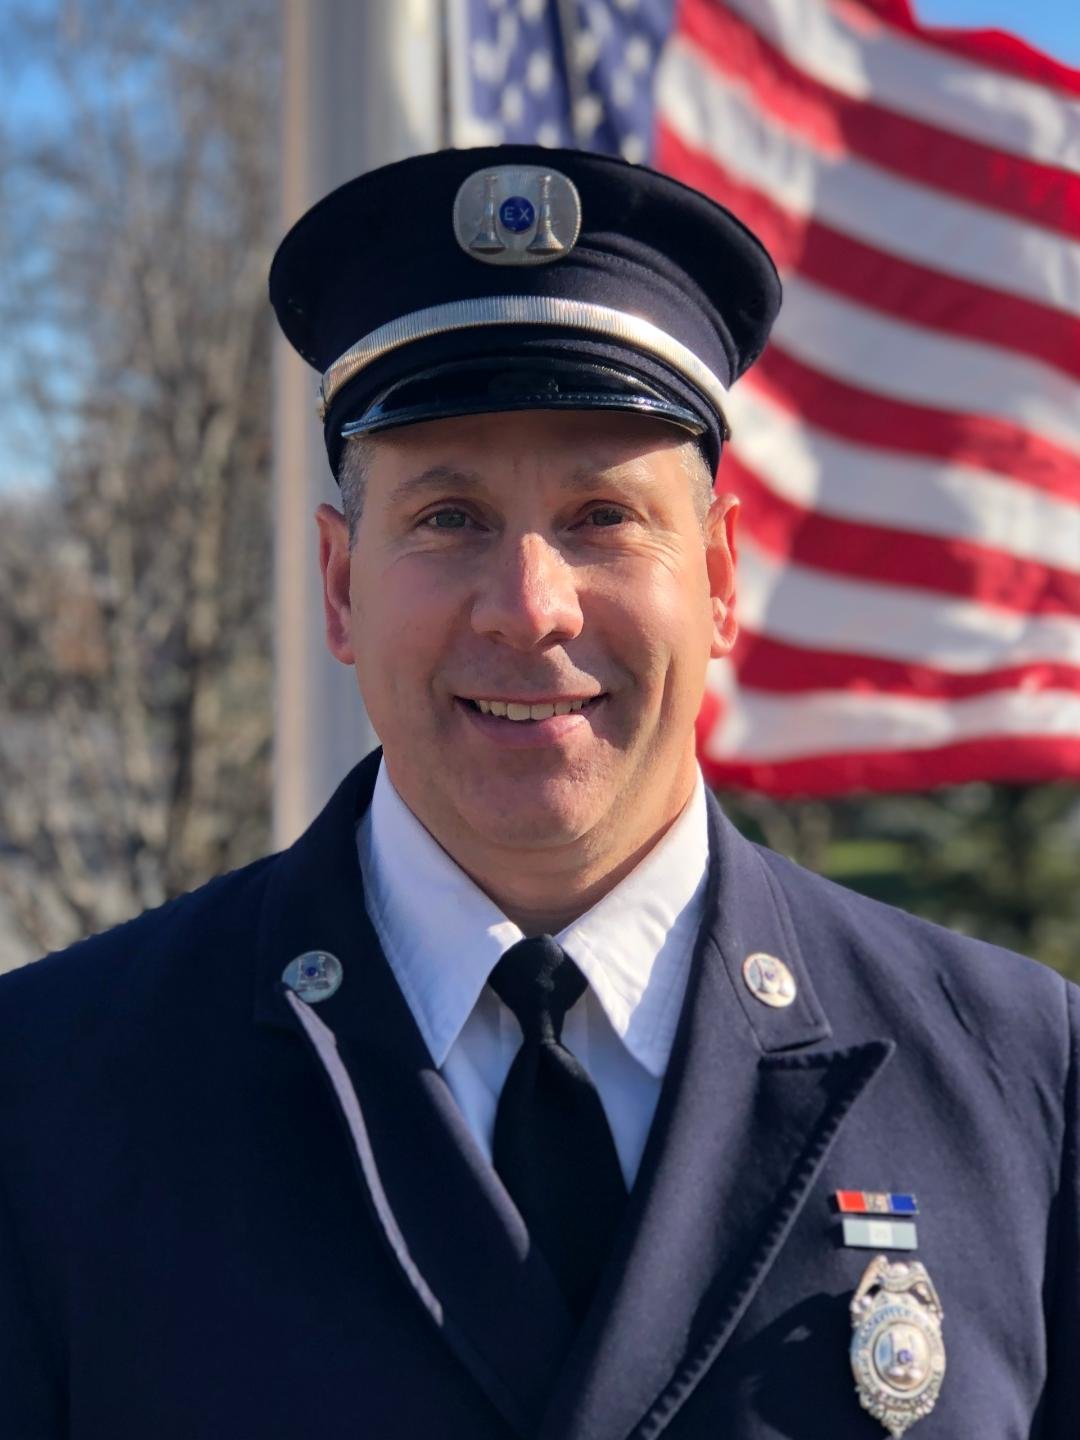 Scott Mohr was elected to serve as second assistant chief.